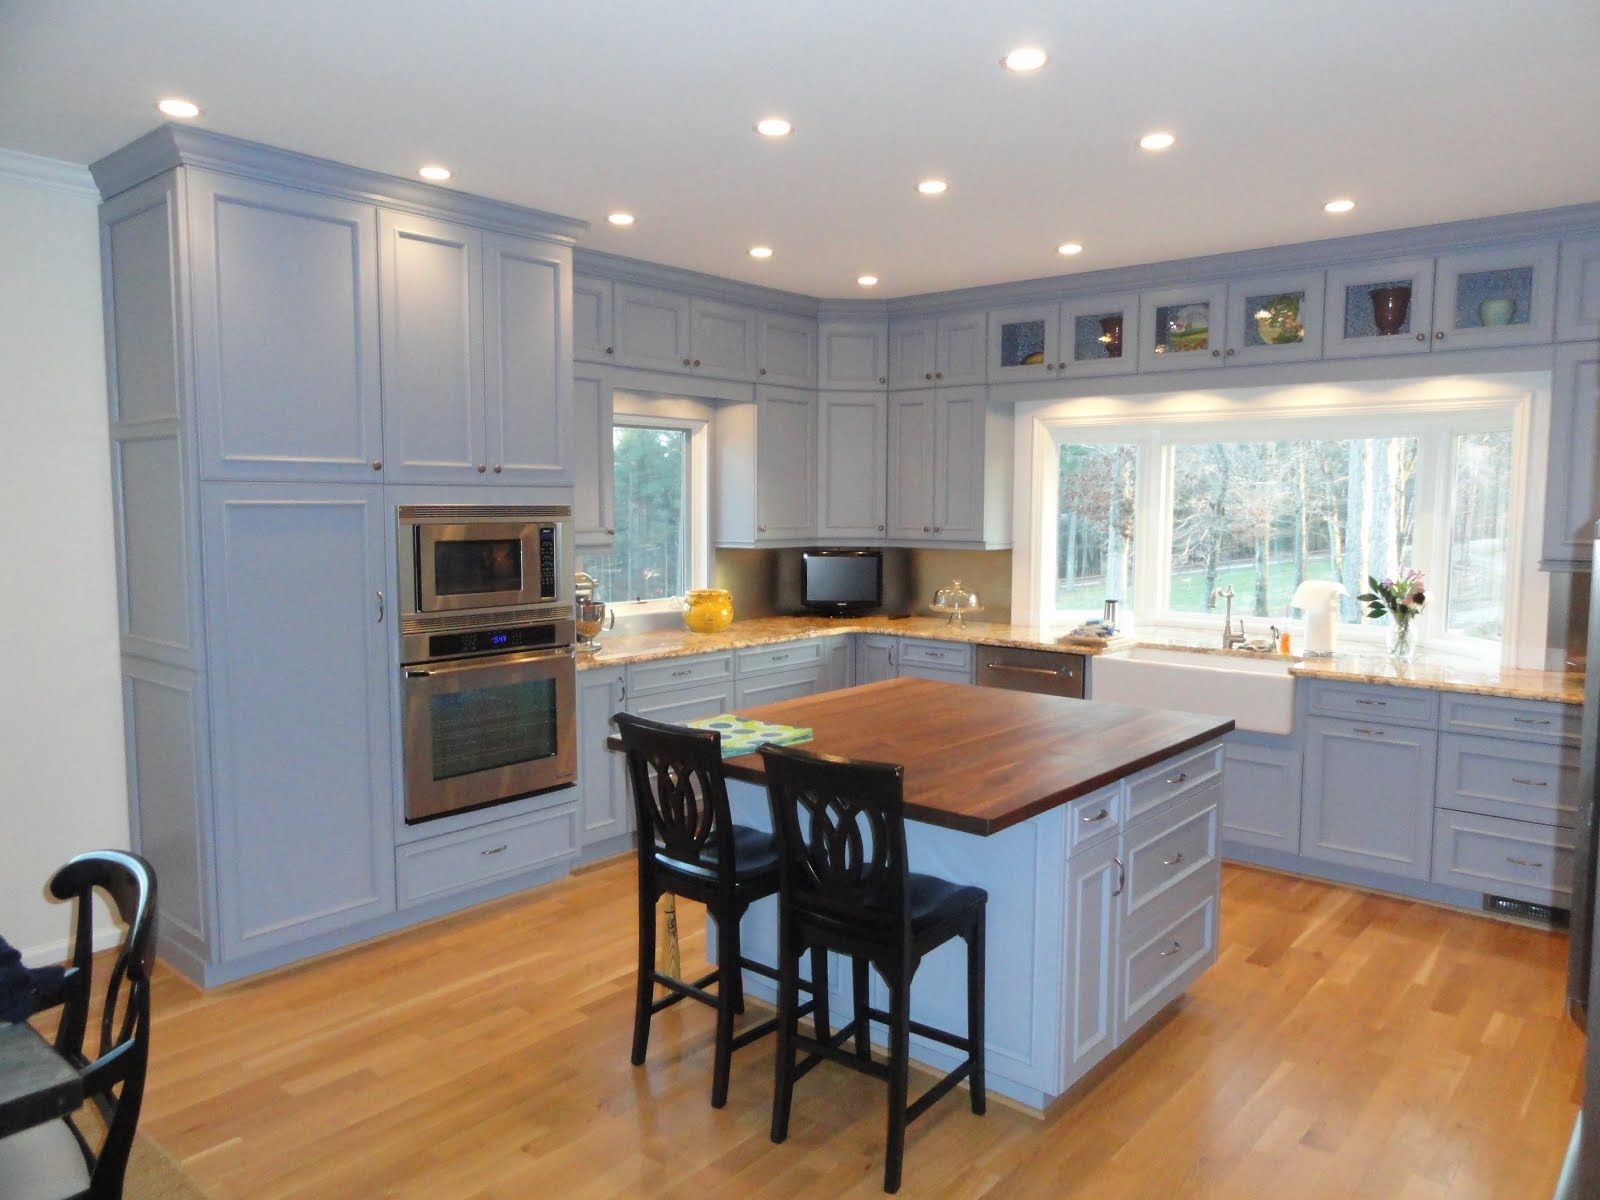 Kitchen Remodel Featuring Greenguard Certified Executive Cabinets